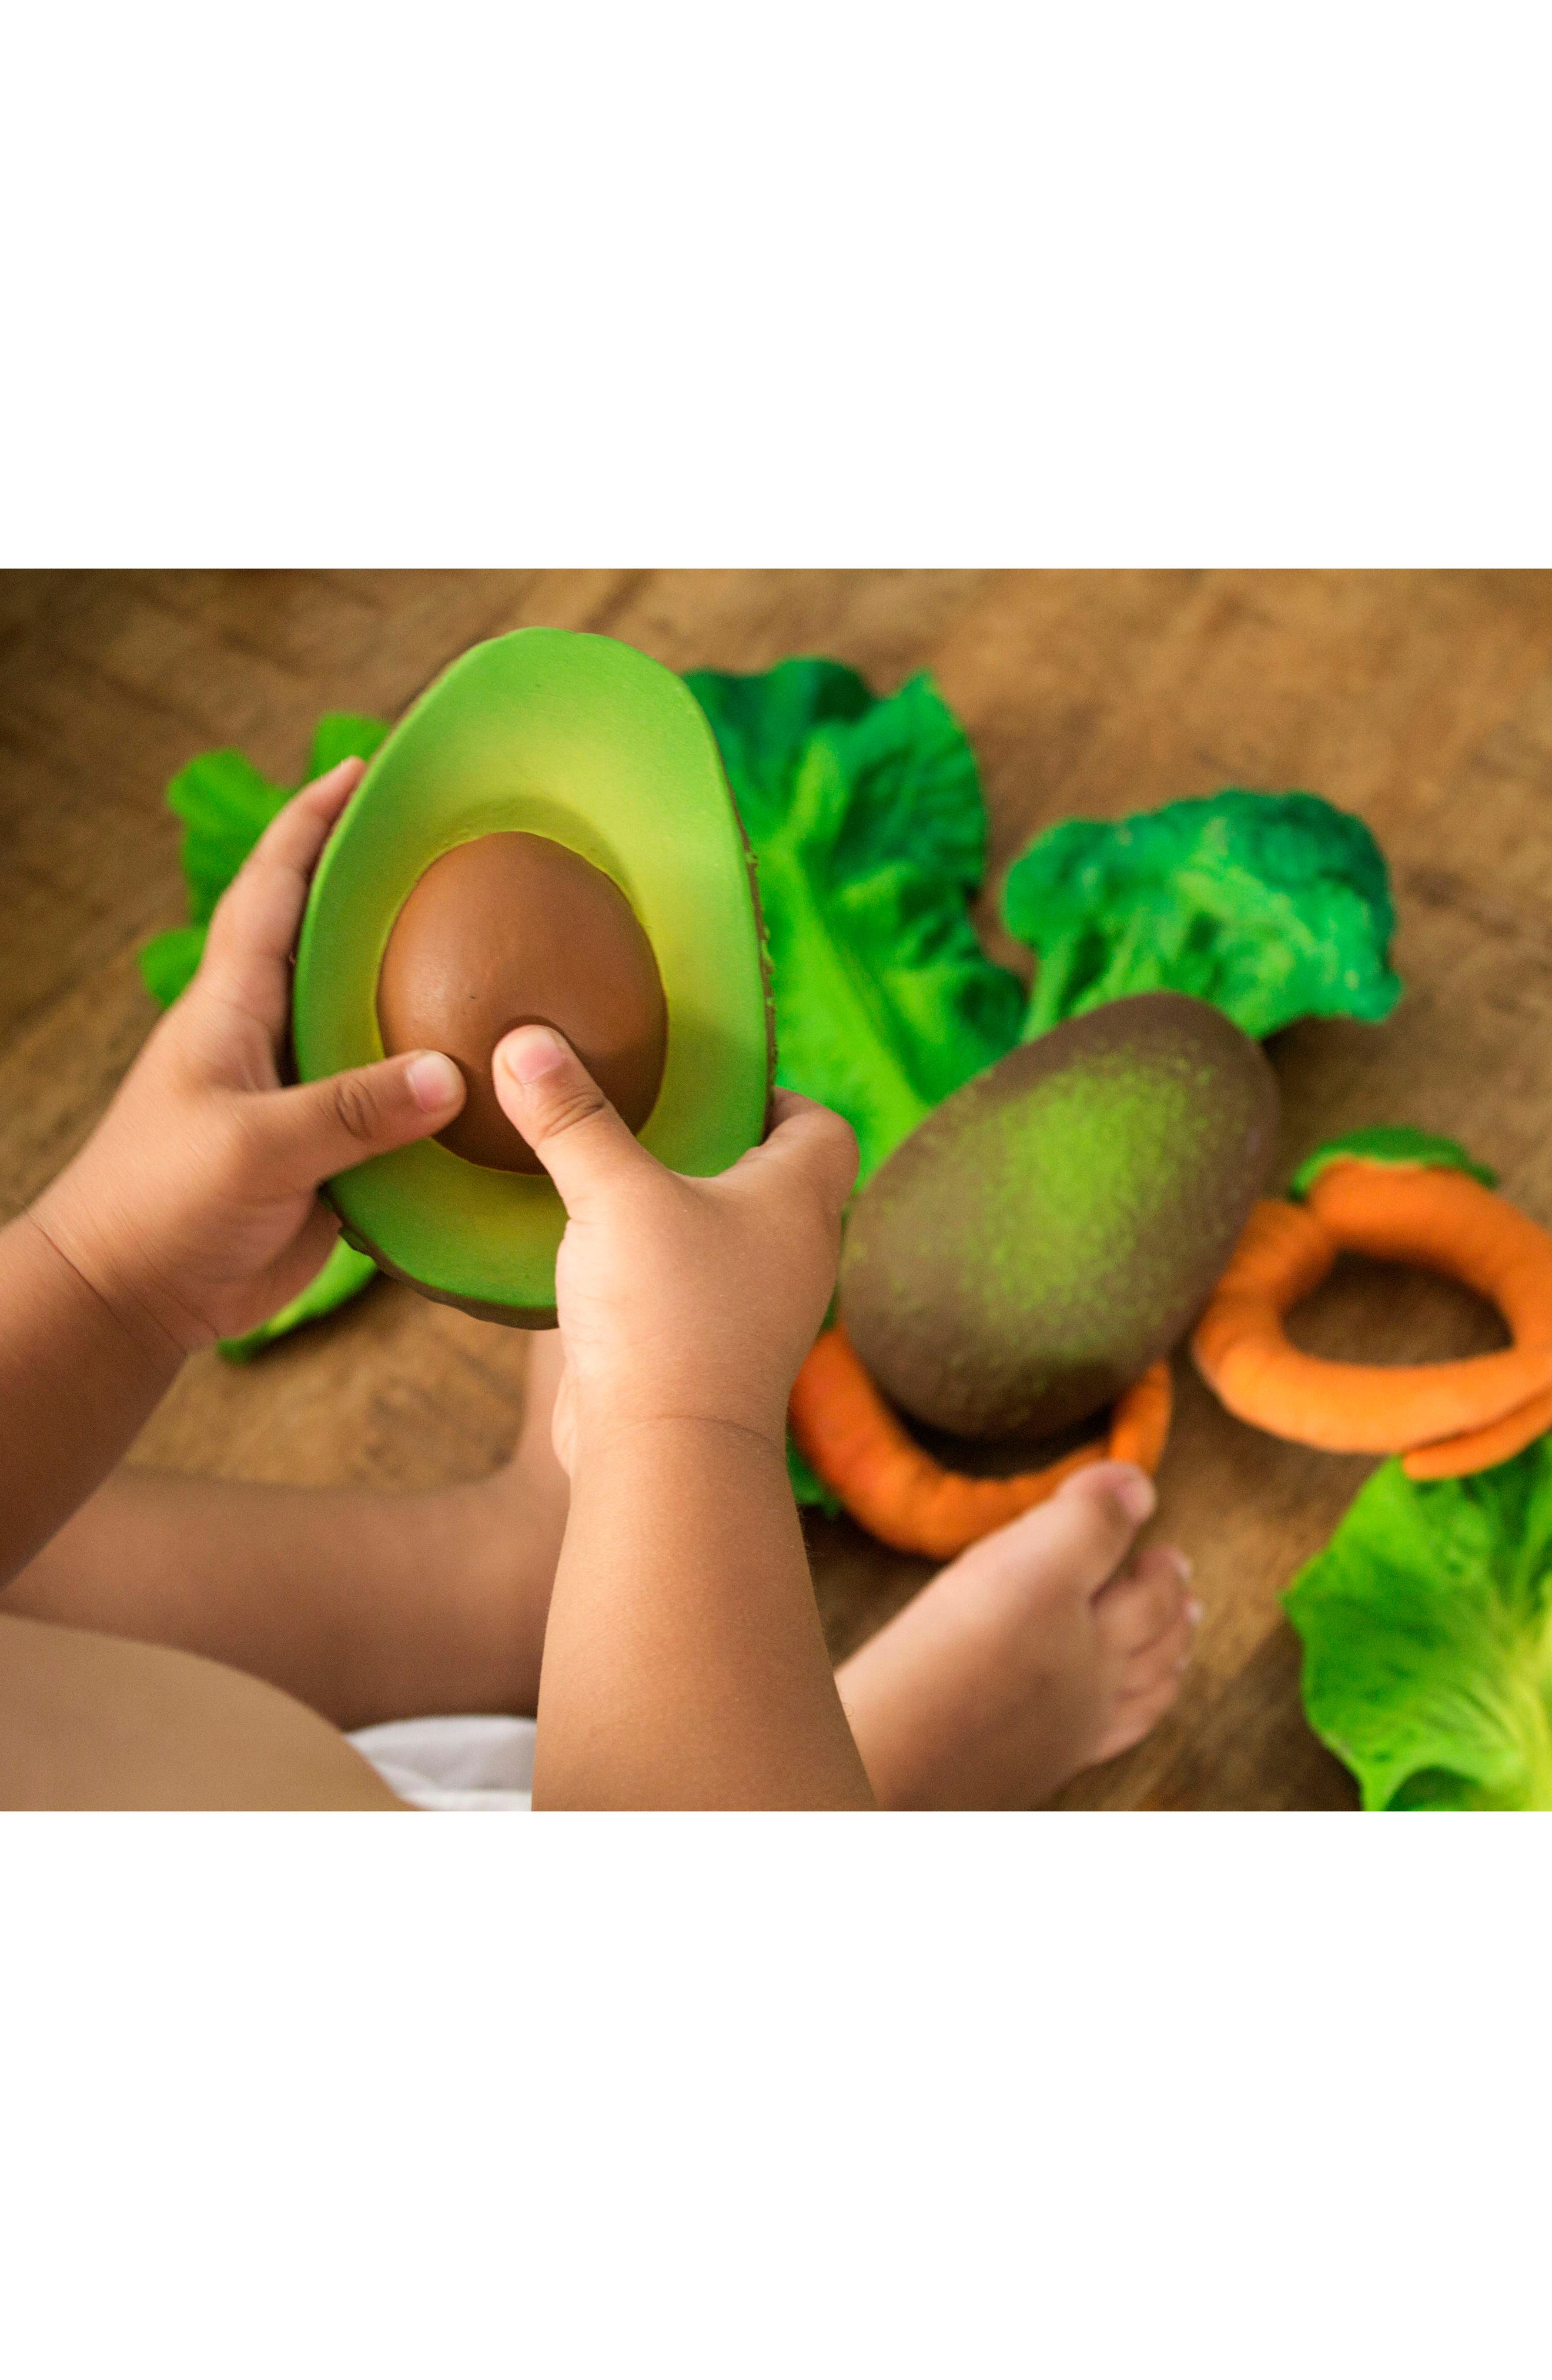 Oli and Carol Arnold the Avocado Teething Toy,                             Alternate thumbnail 6, color,                             GREEN